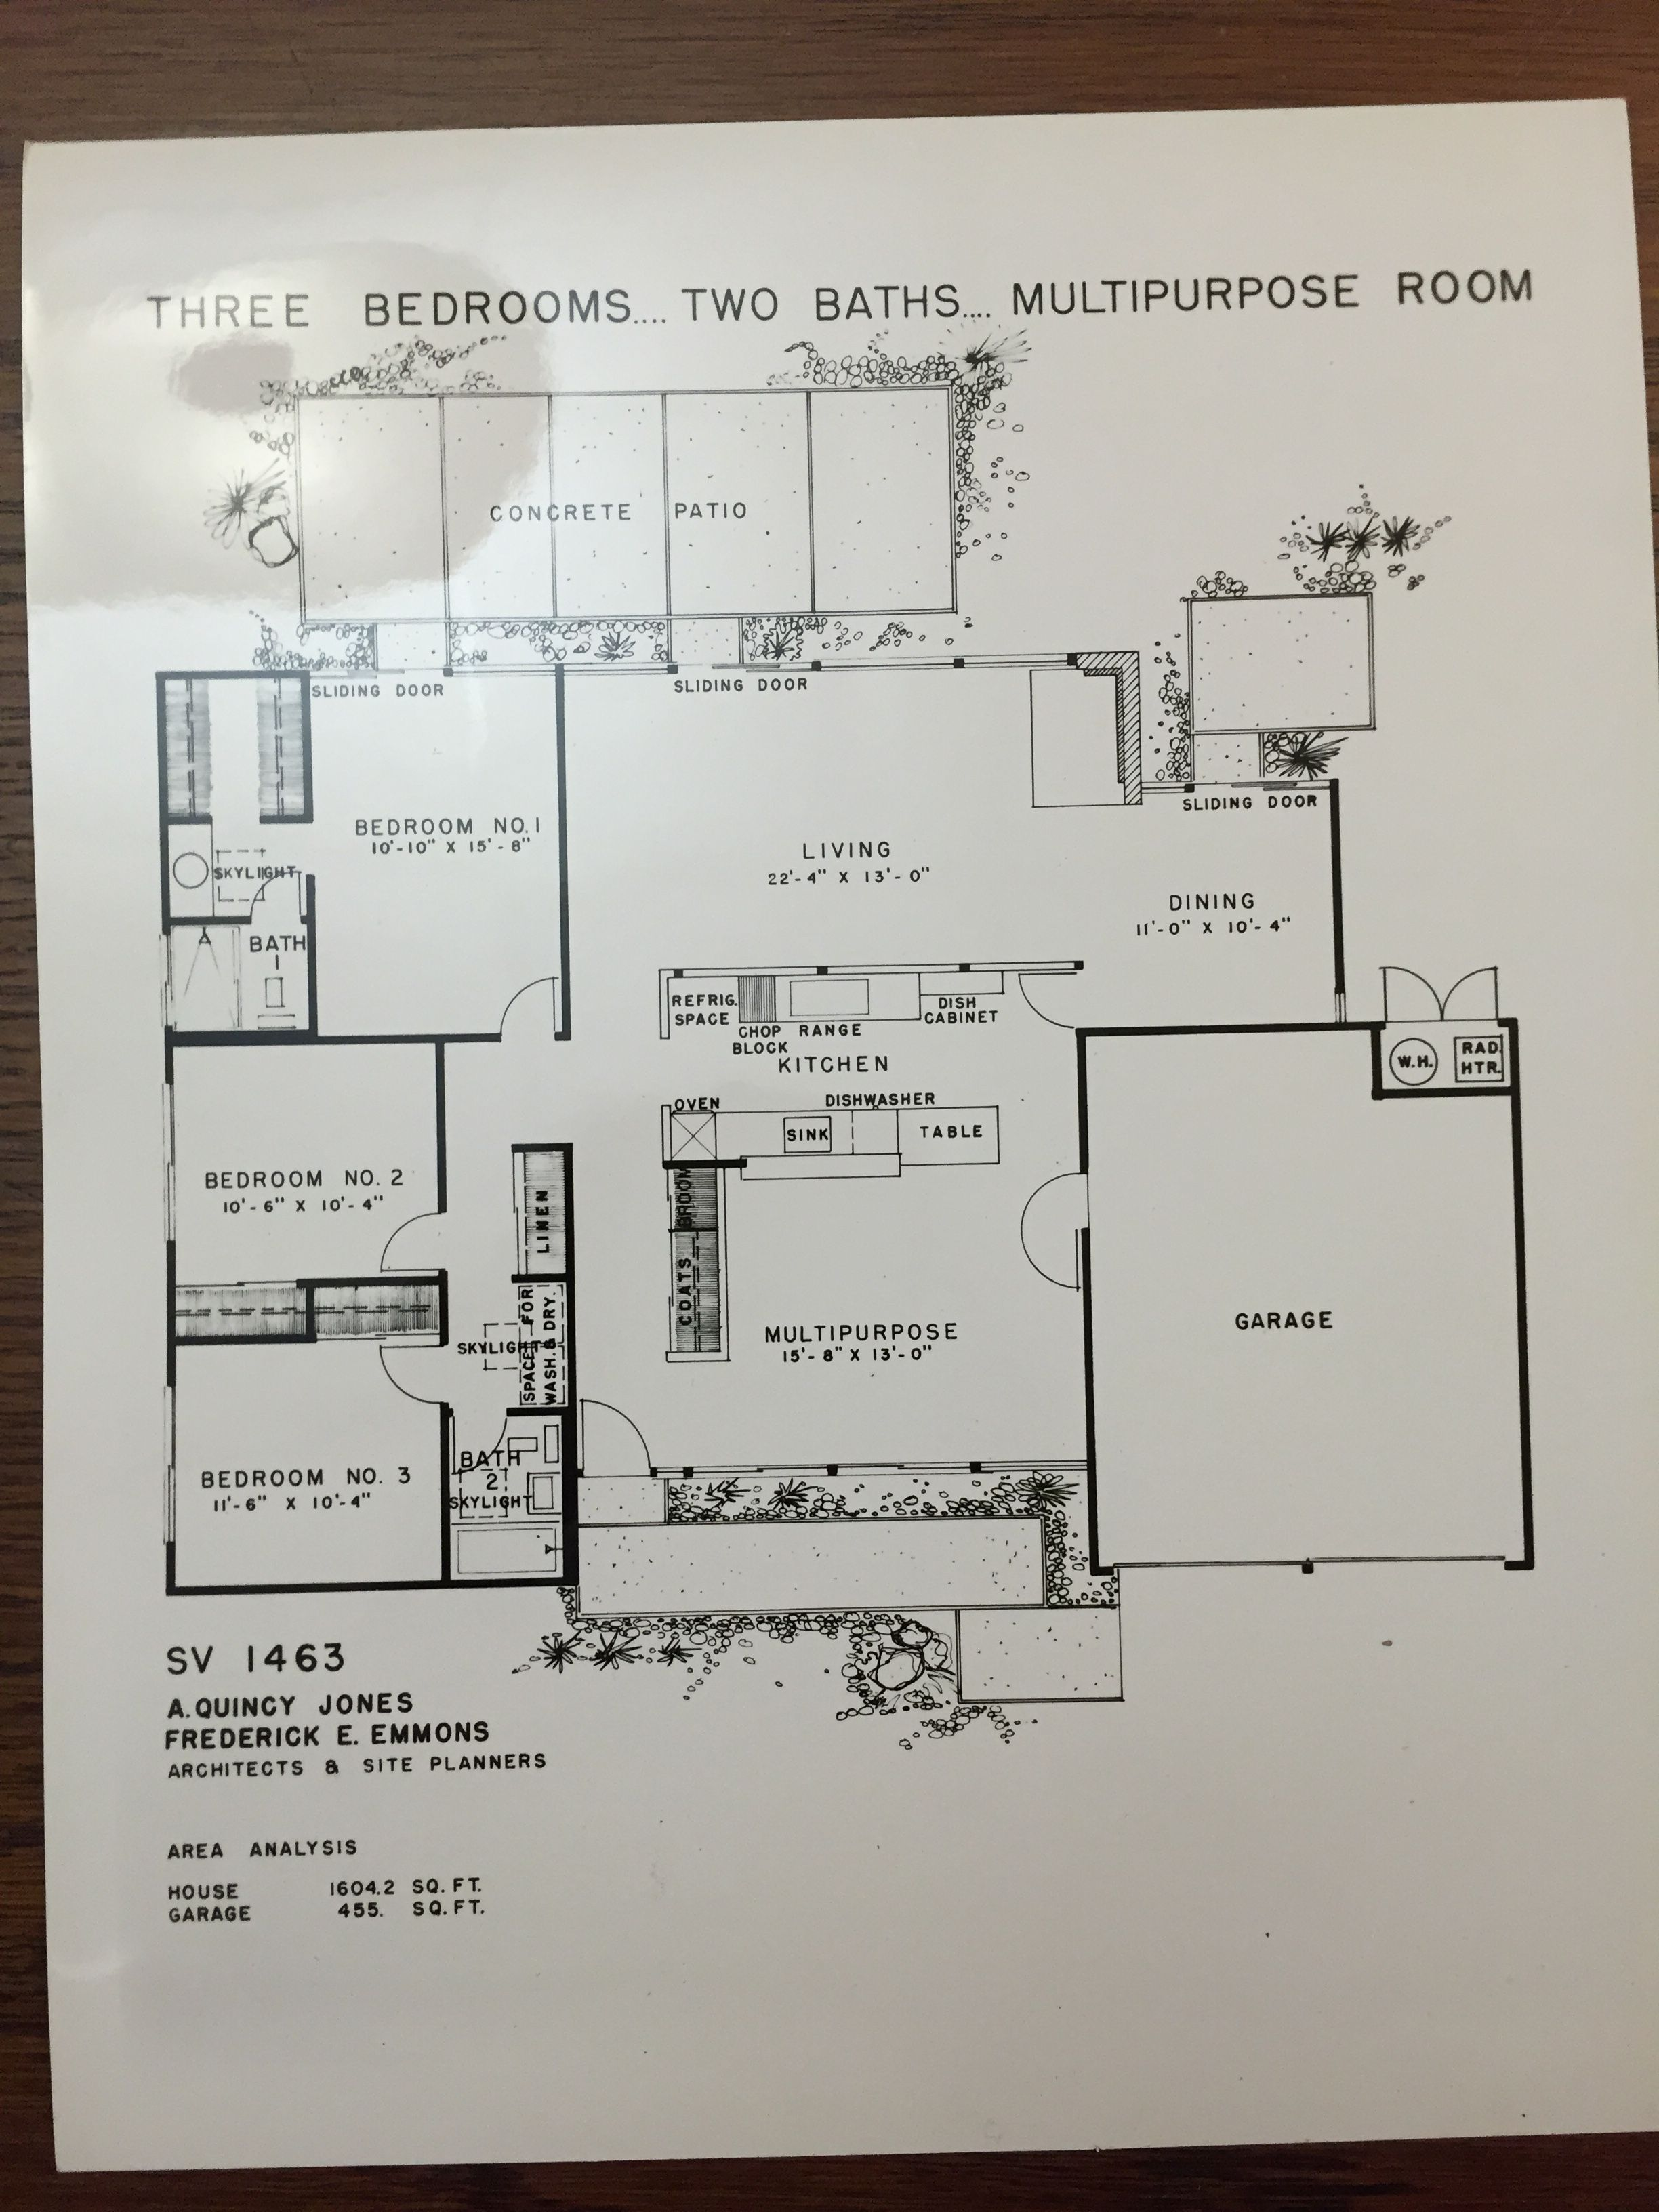 Eichler Homes floor plan SV 1463  Original at UCLA Library Special     Eichler Homes floor plan SV 1463  Original at UCLA Library Special  Collection  A